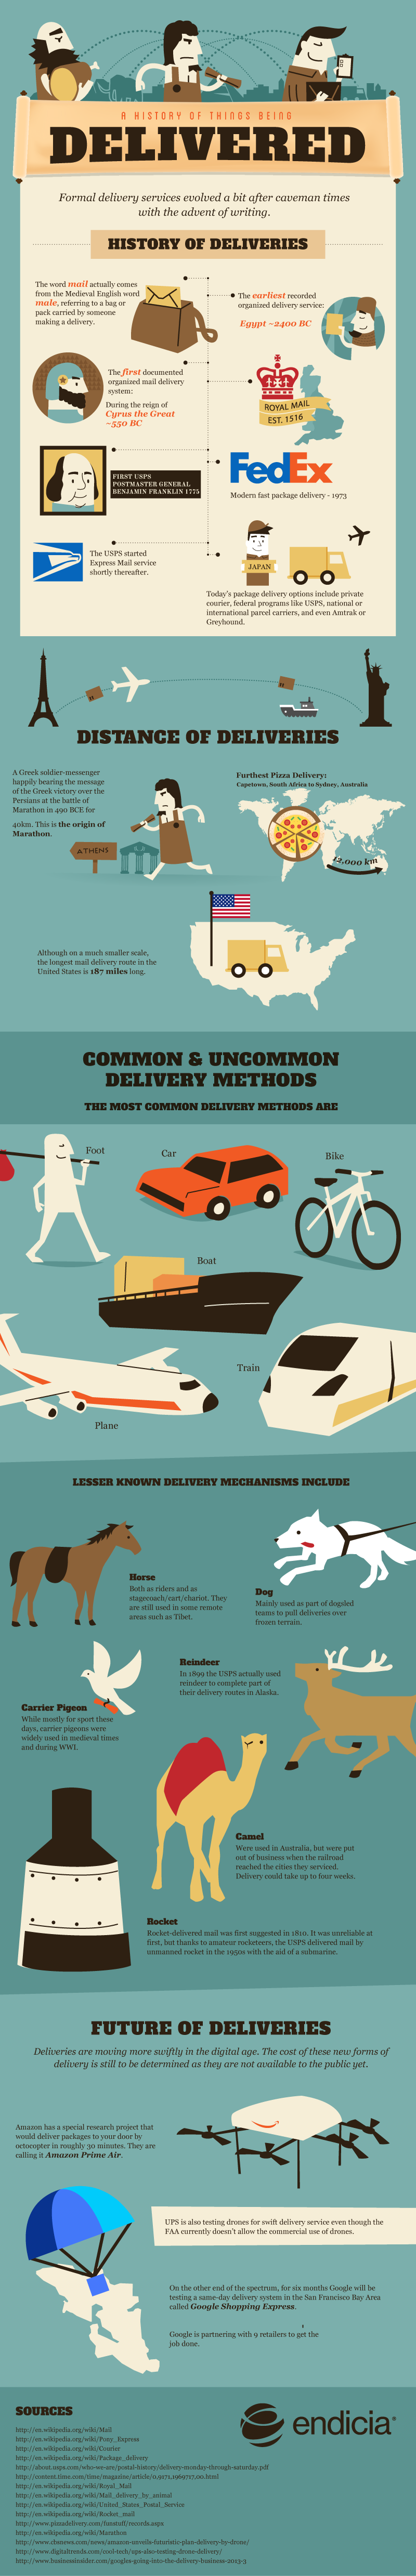 http://www.endicia.com/why-us/blog/2014/the-evolution-of-deliveries-and-shipping-solutions-like-usps-shipping